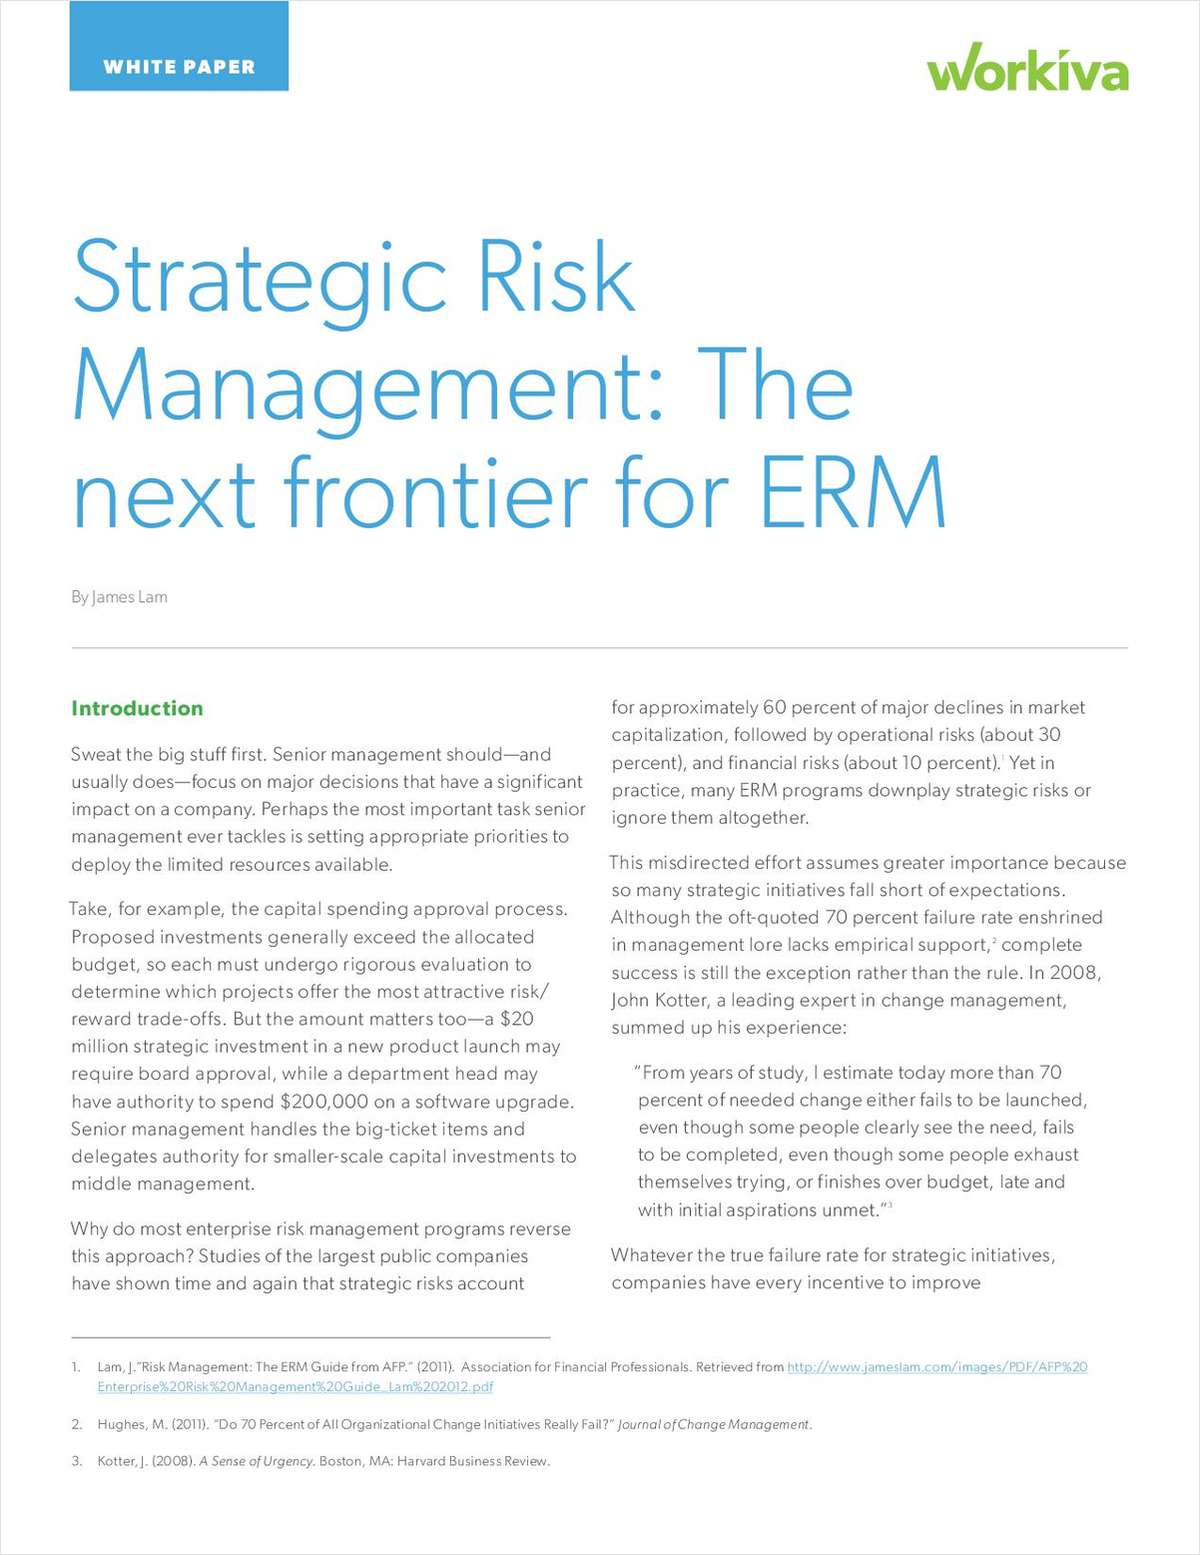 Be Prepared for the Next Frontier in ERM--Strategic Risk